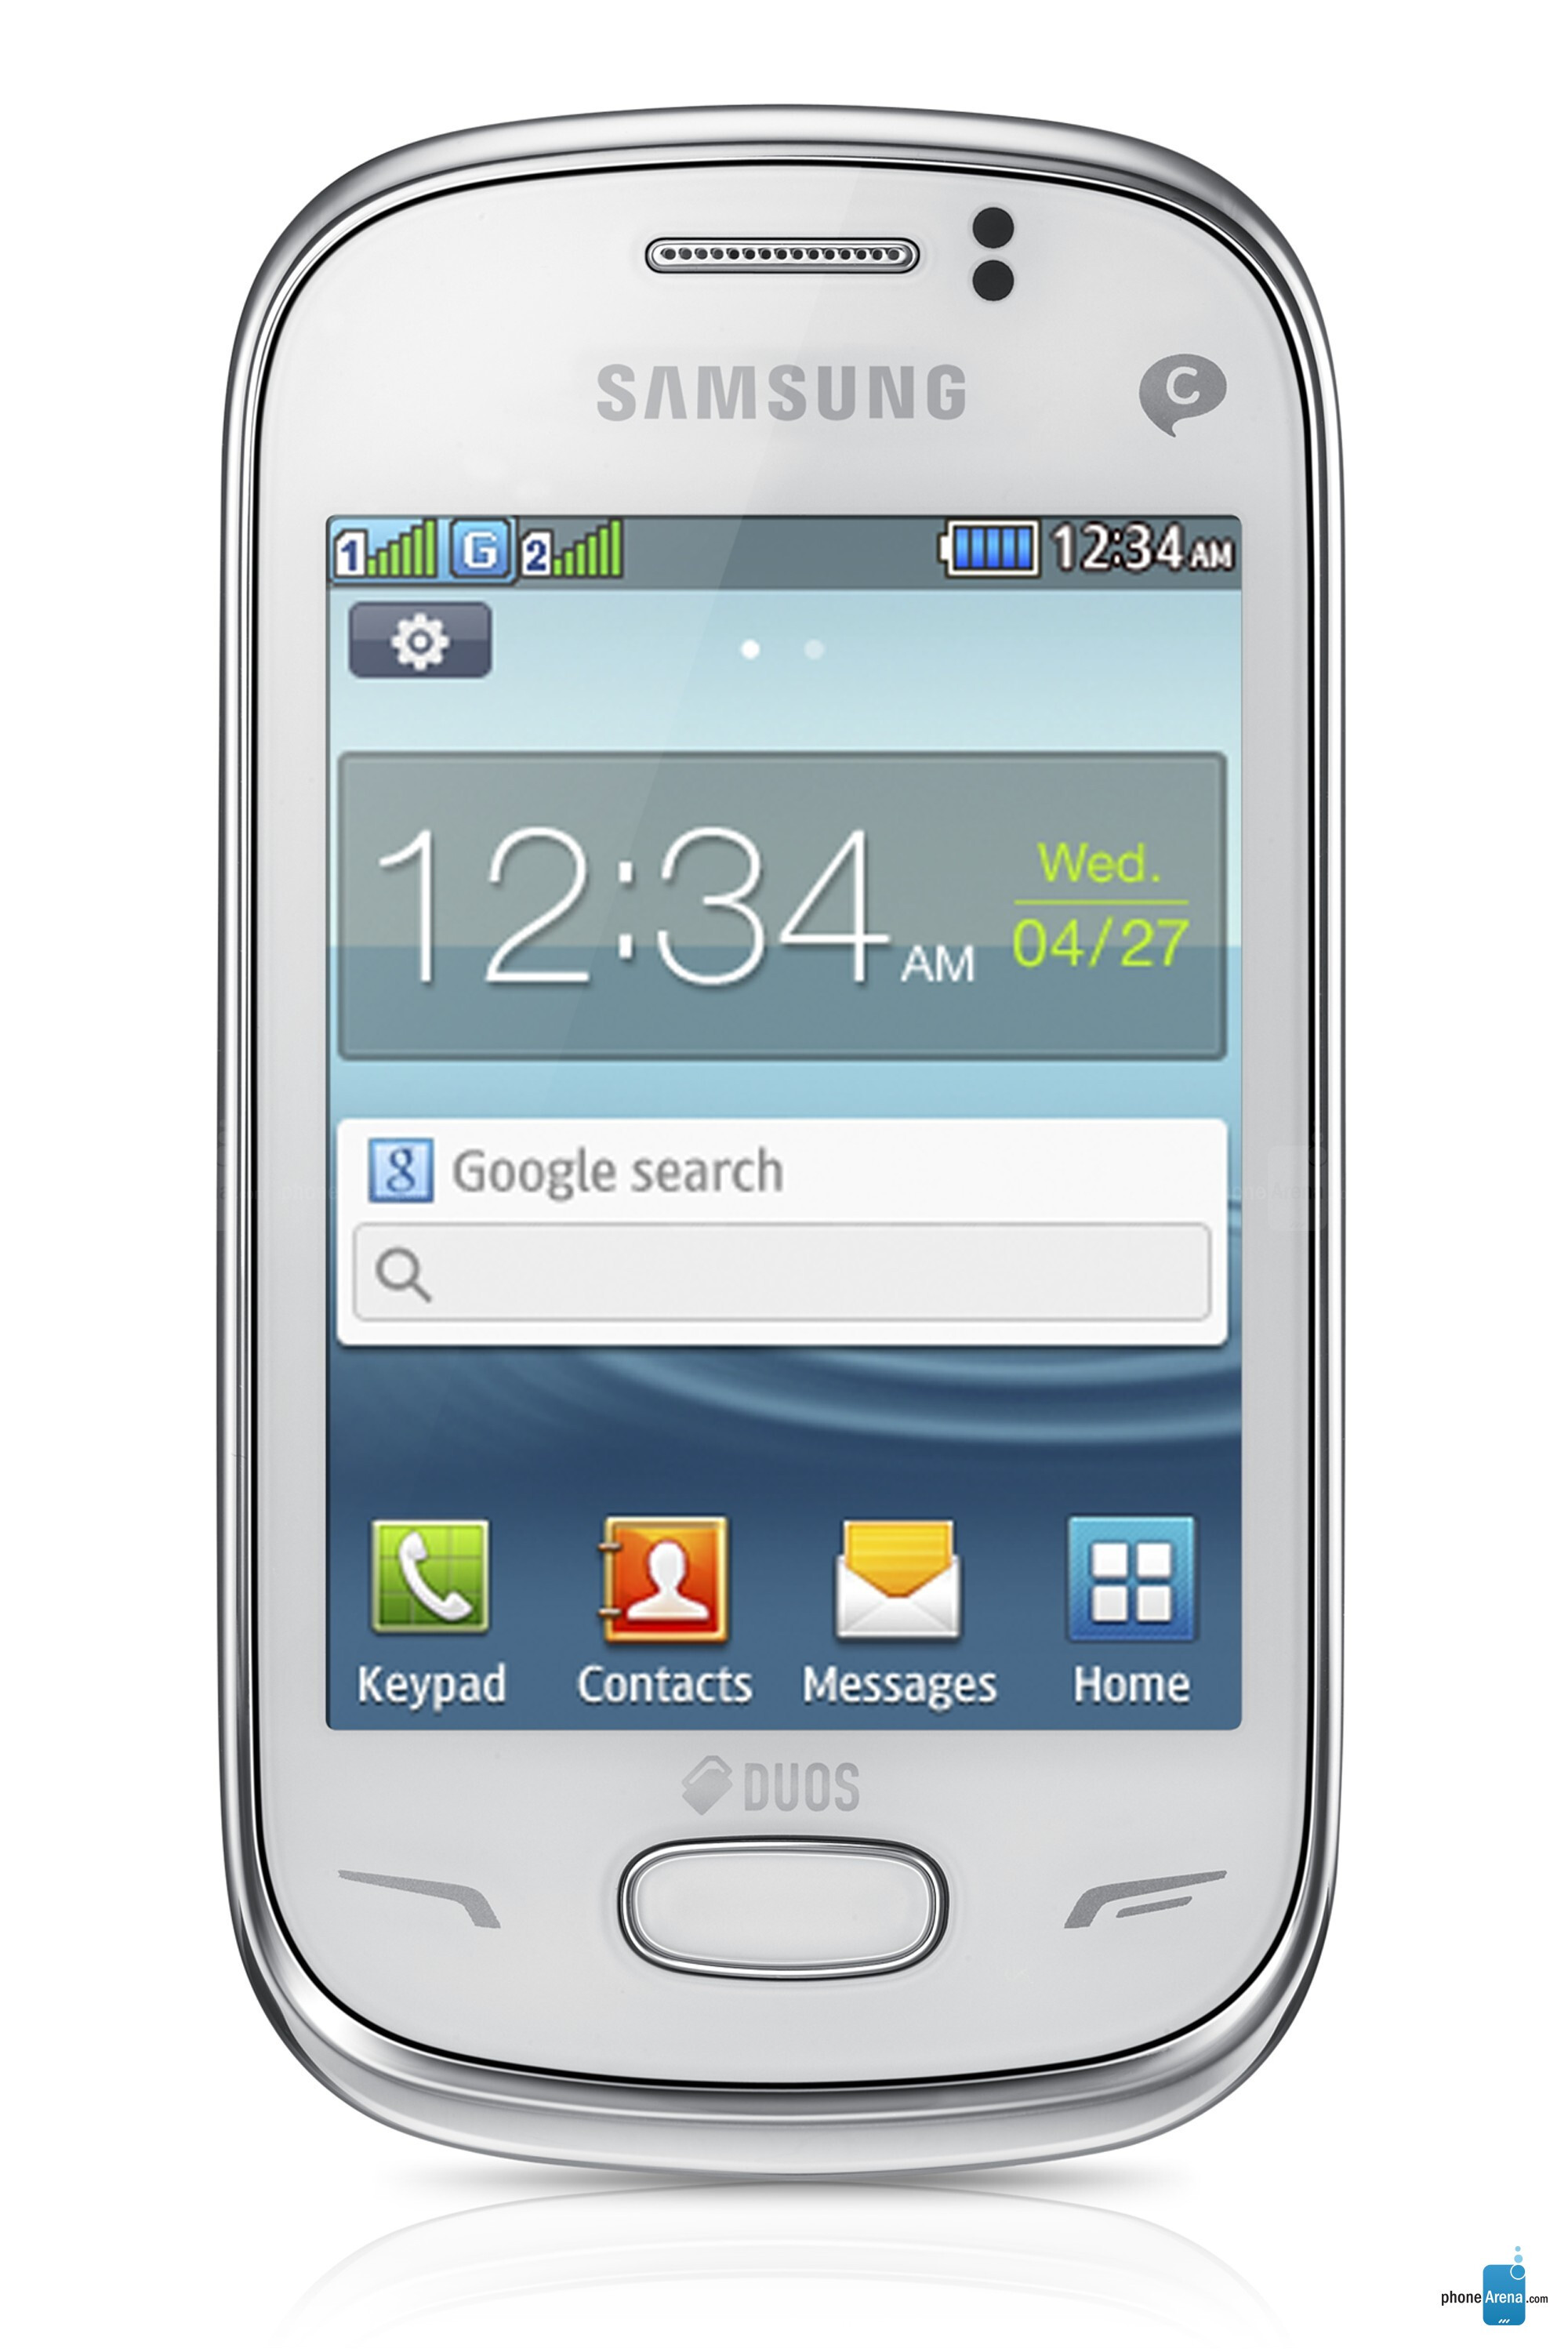 Samsung Rex 60 CR - Full phone specifications